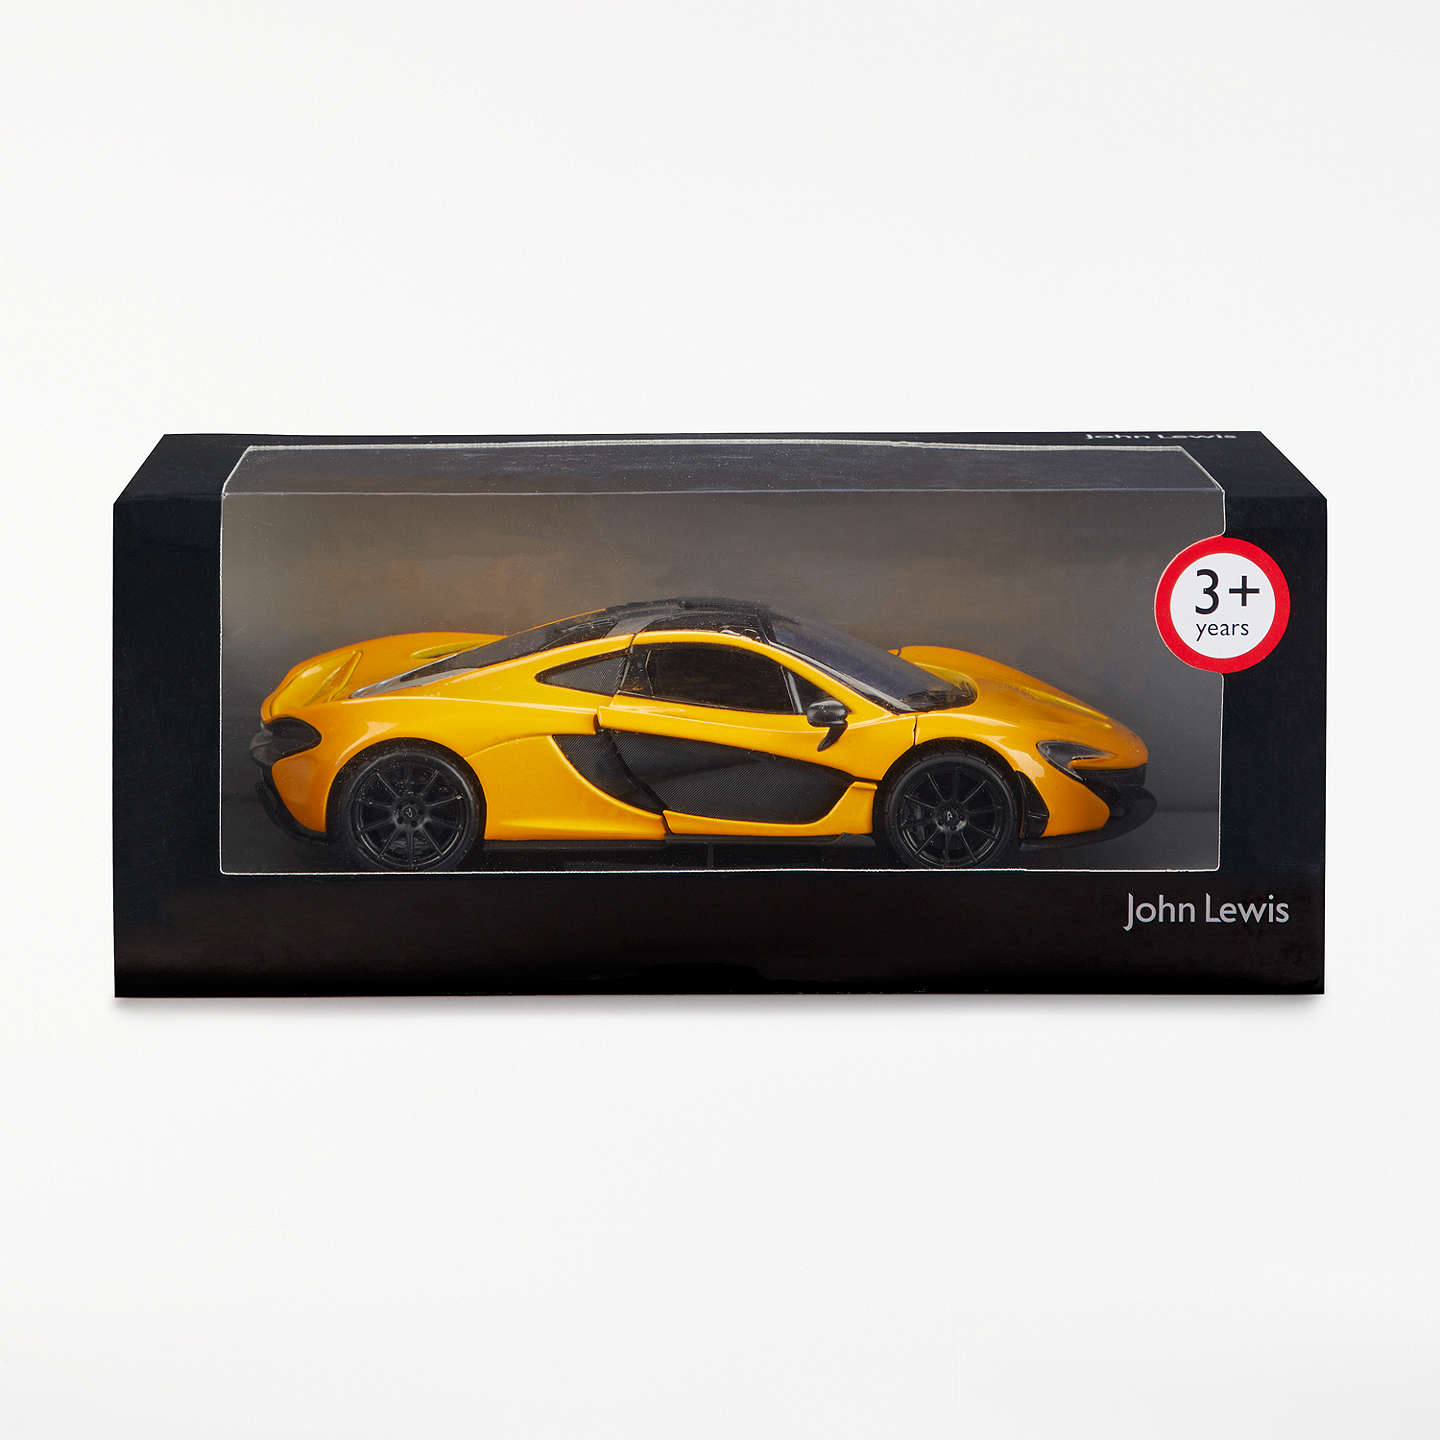 BuyJohn Lewis 1:24 McLaren P1 Die Cast Toy Car Online At Johnlewis.